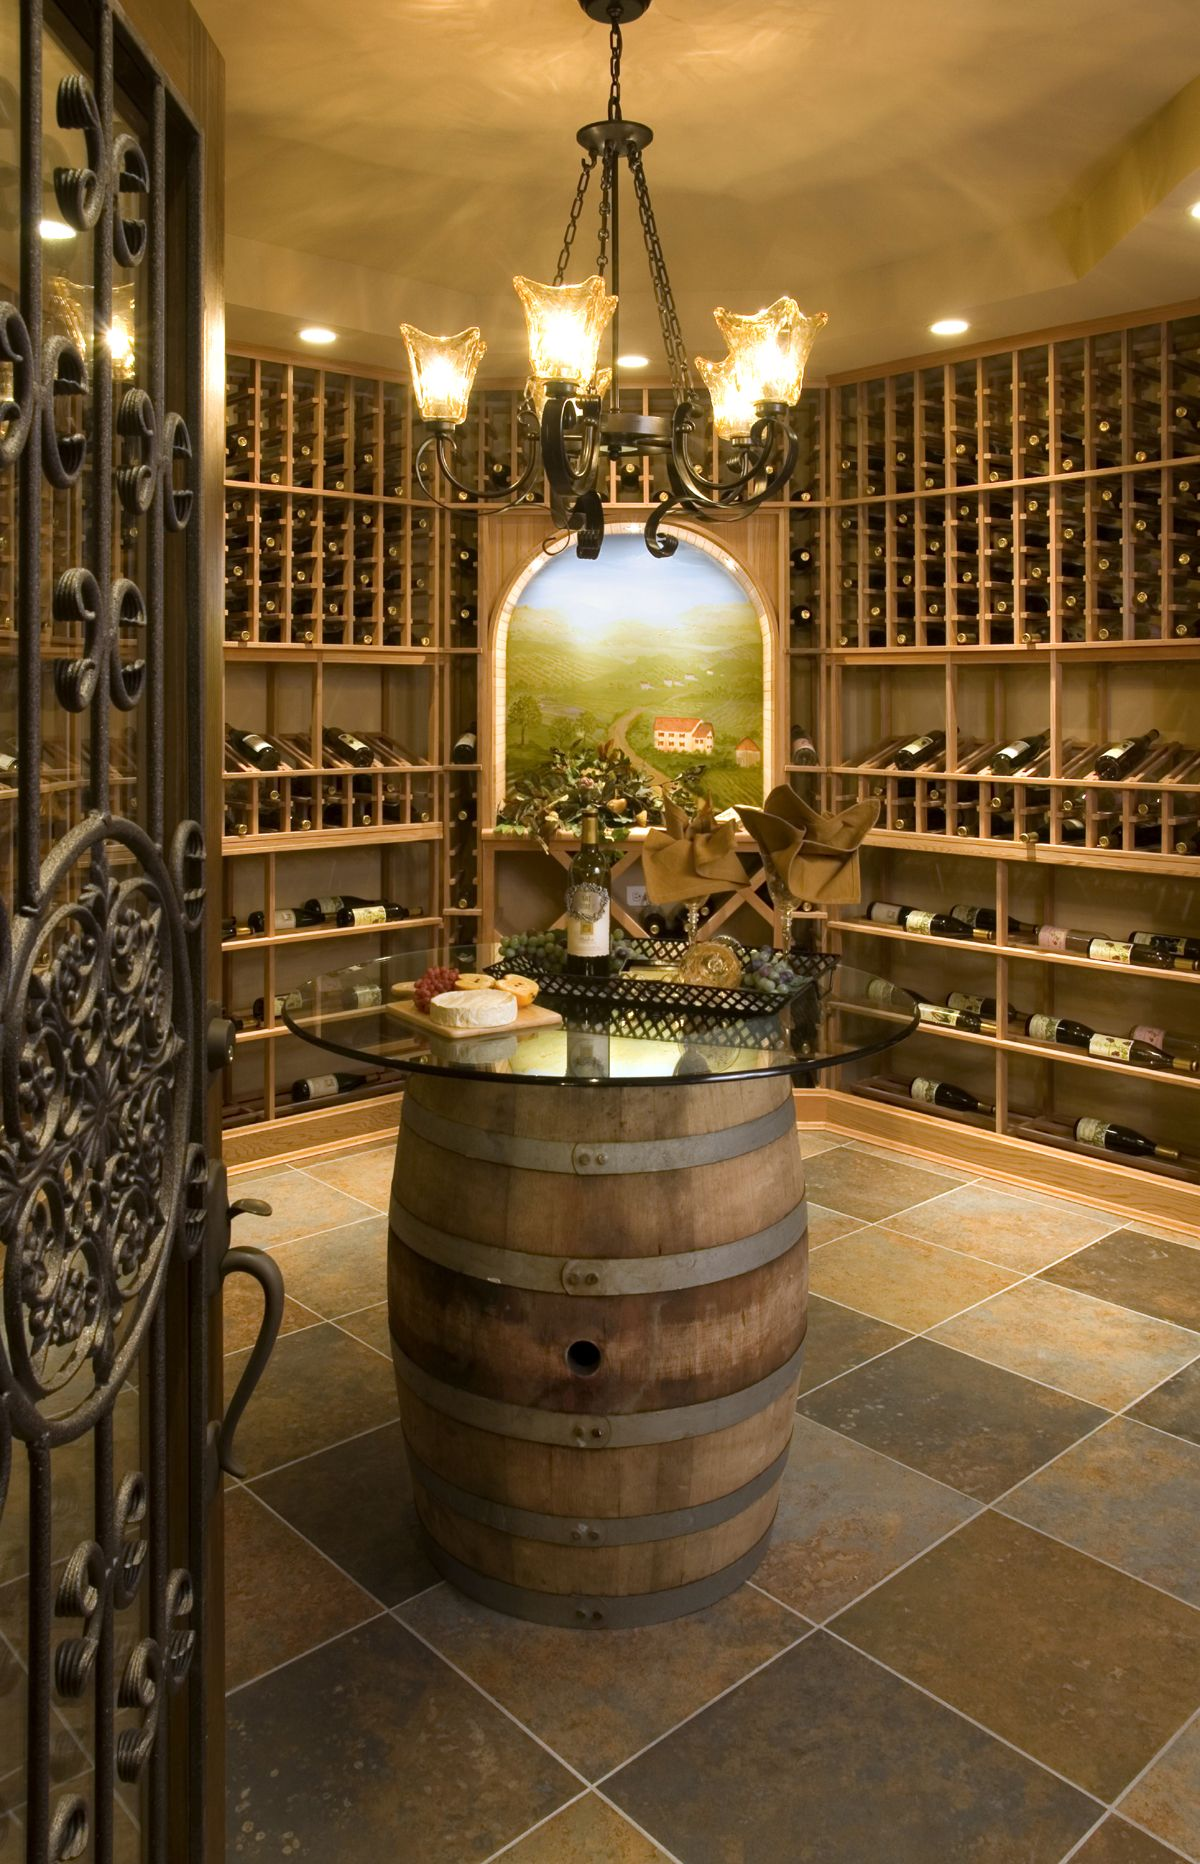 A wine cellar, how nice would that be Wine cellar